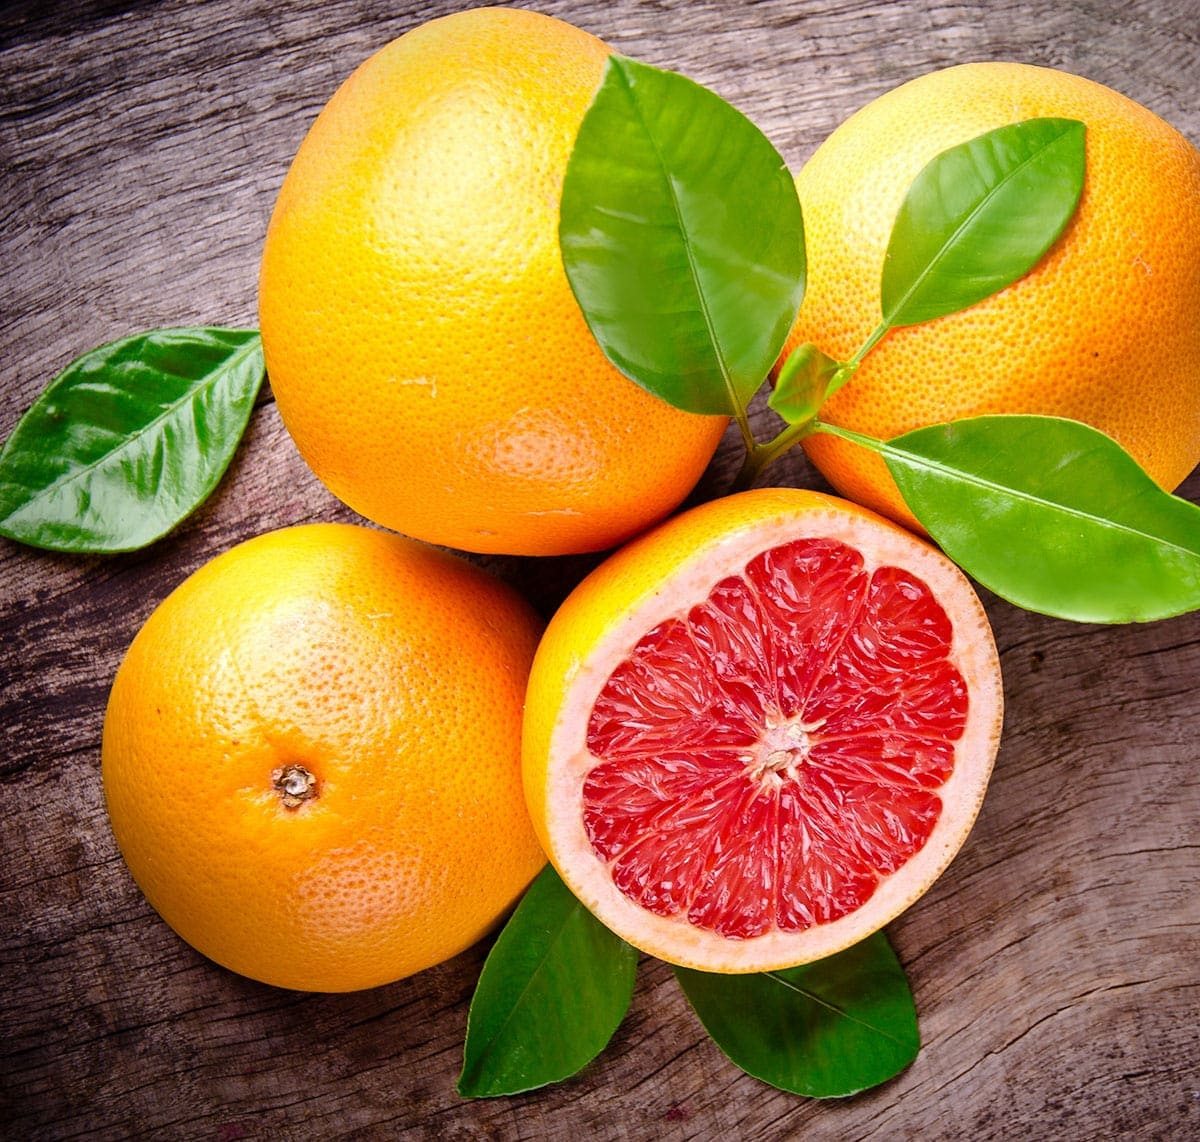 3 Whole grapefruits, one half, plus leaves on a brown wooden background